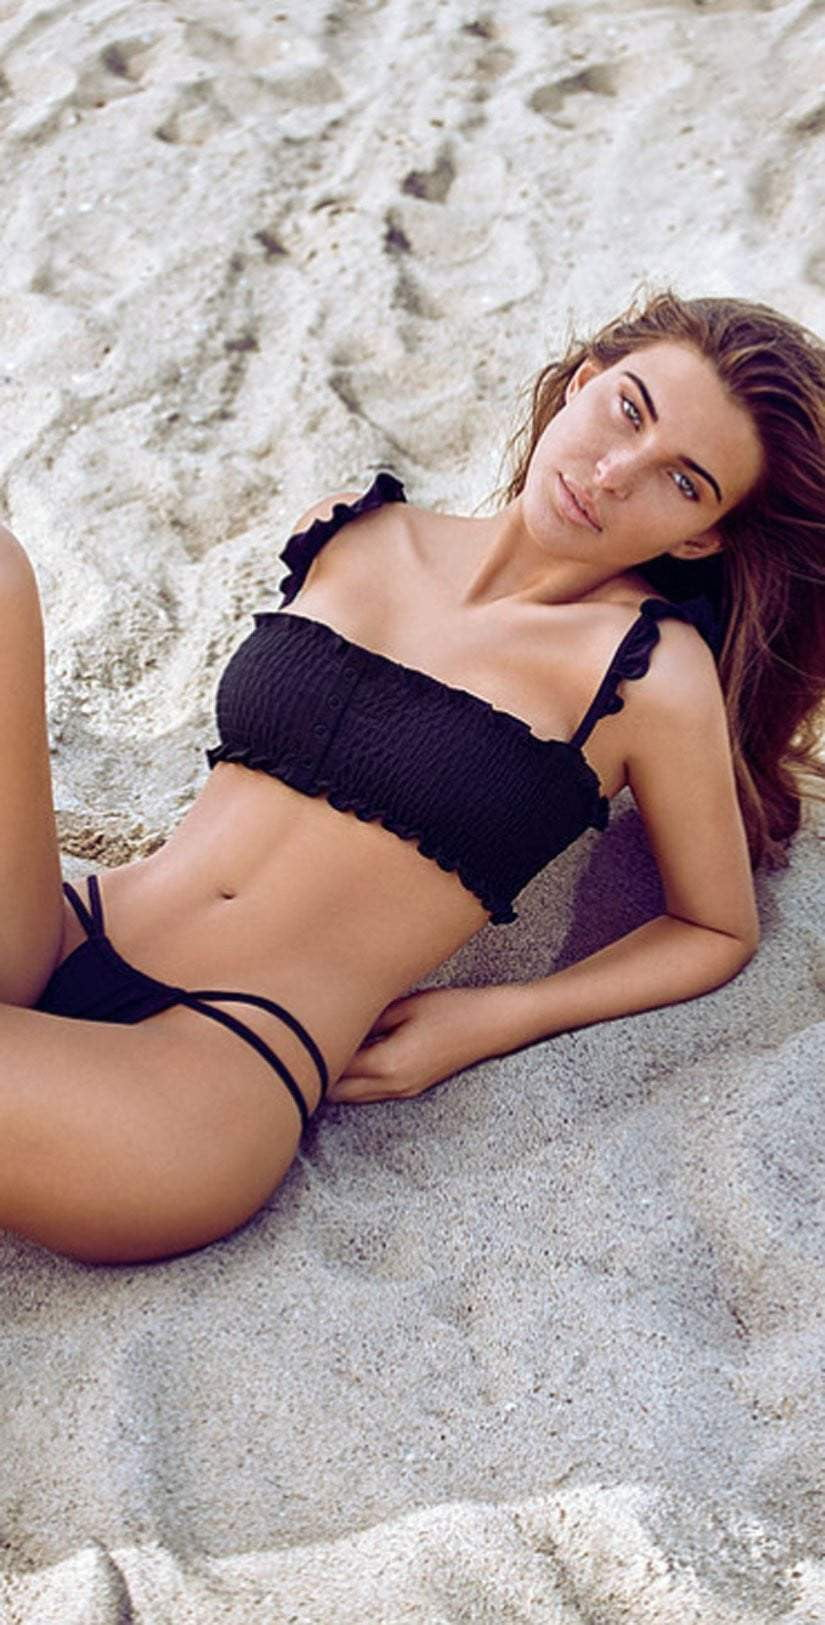 Chloe Rose Sweet Pea Bikini Set In Black: